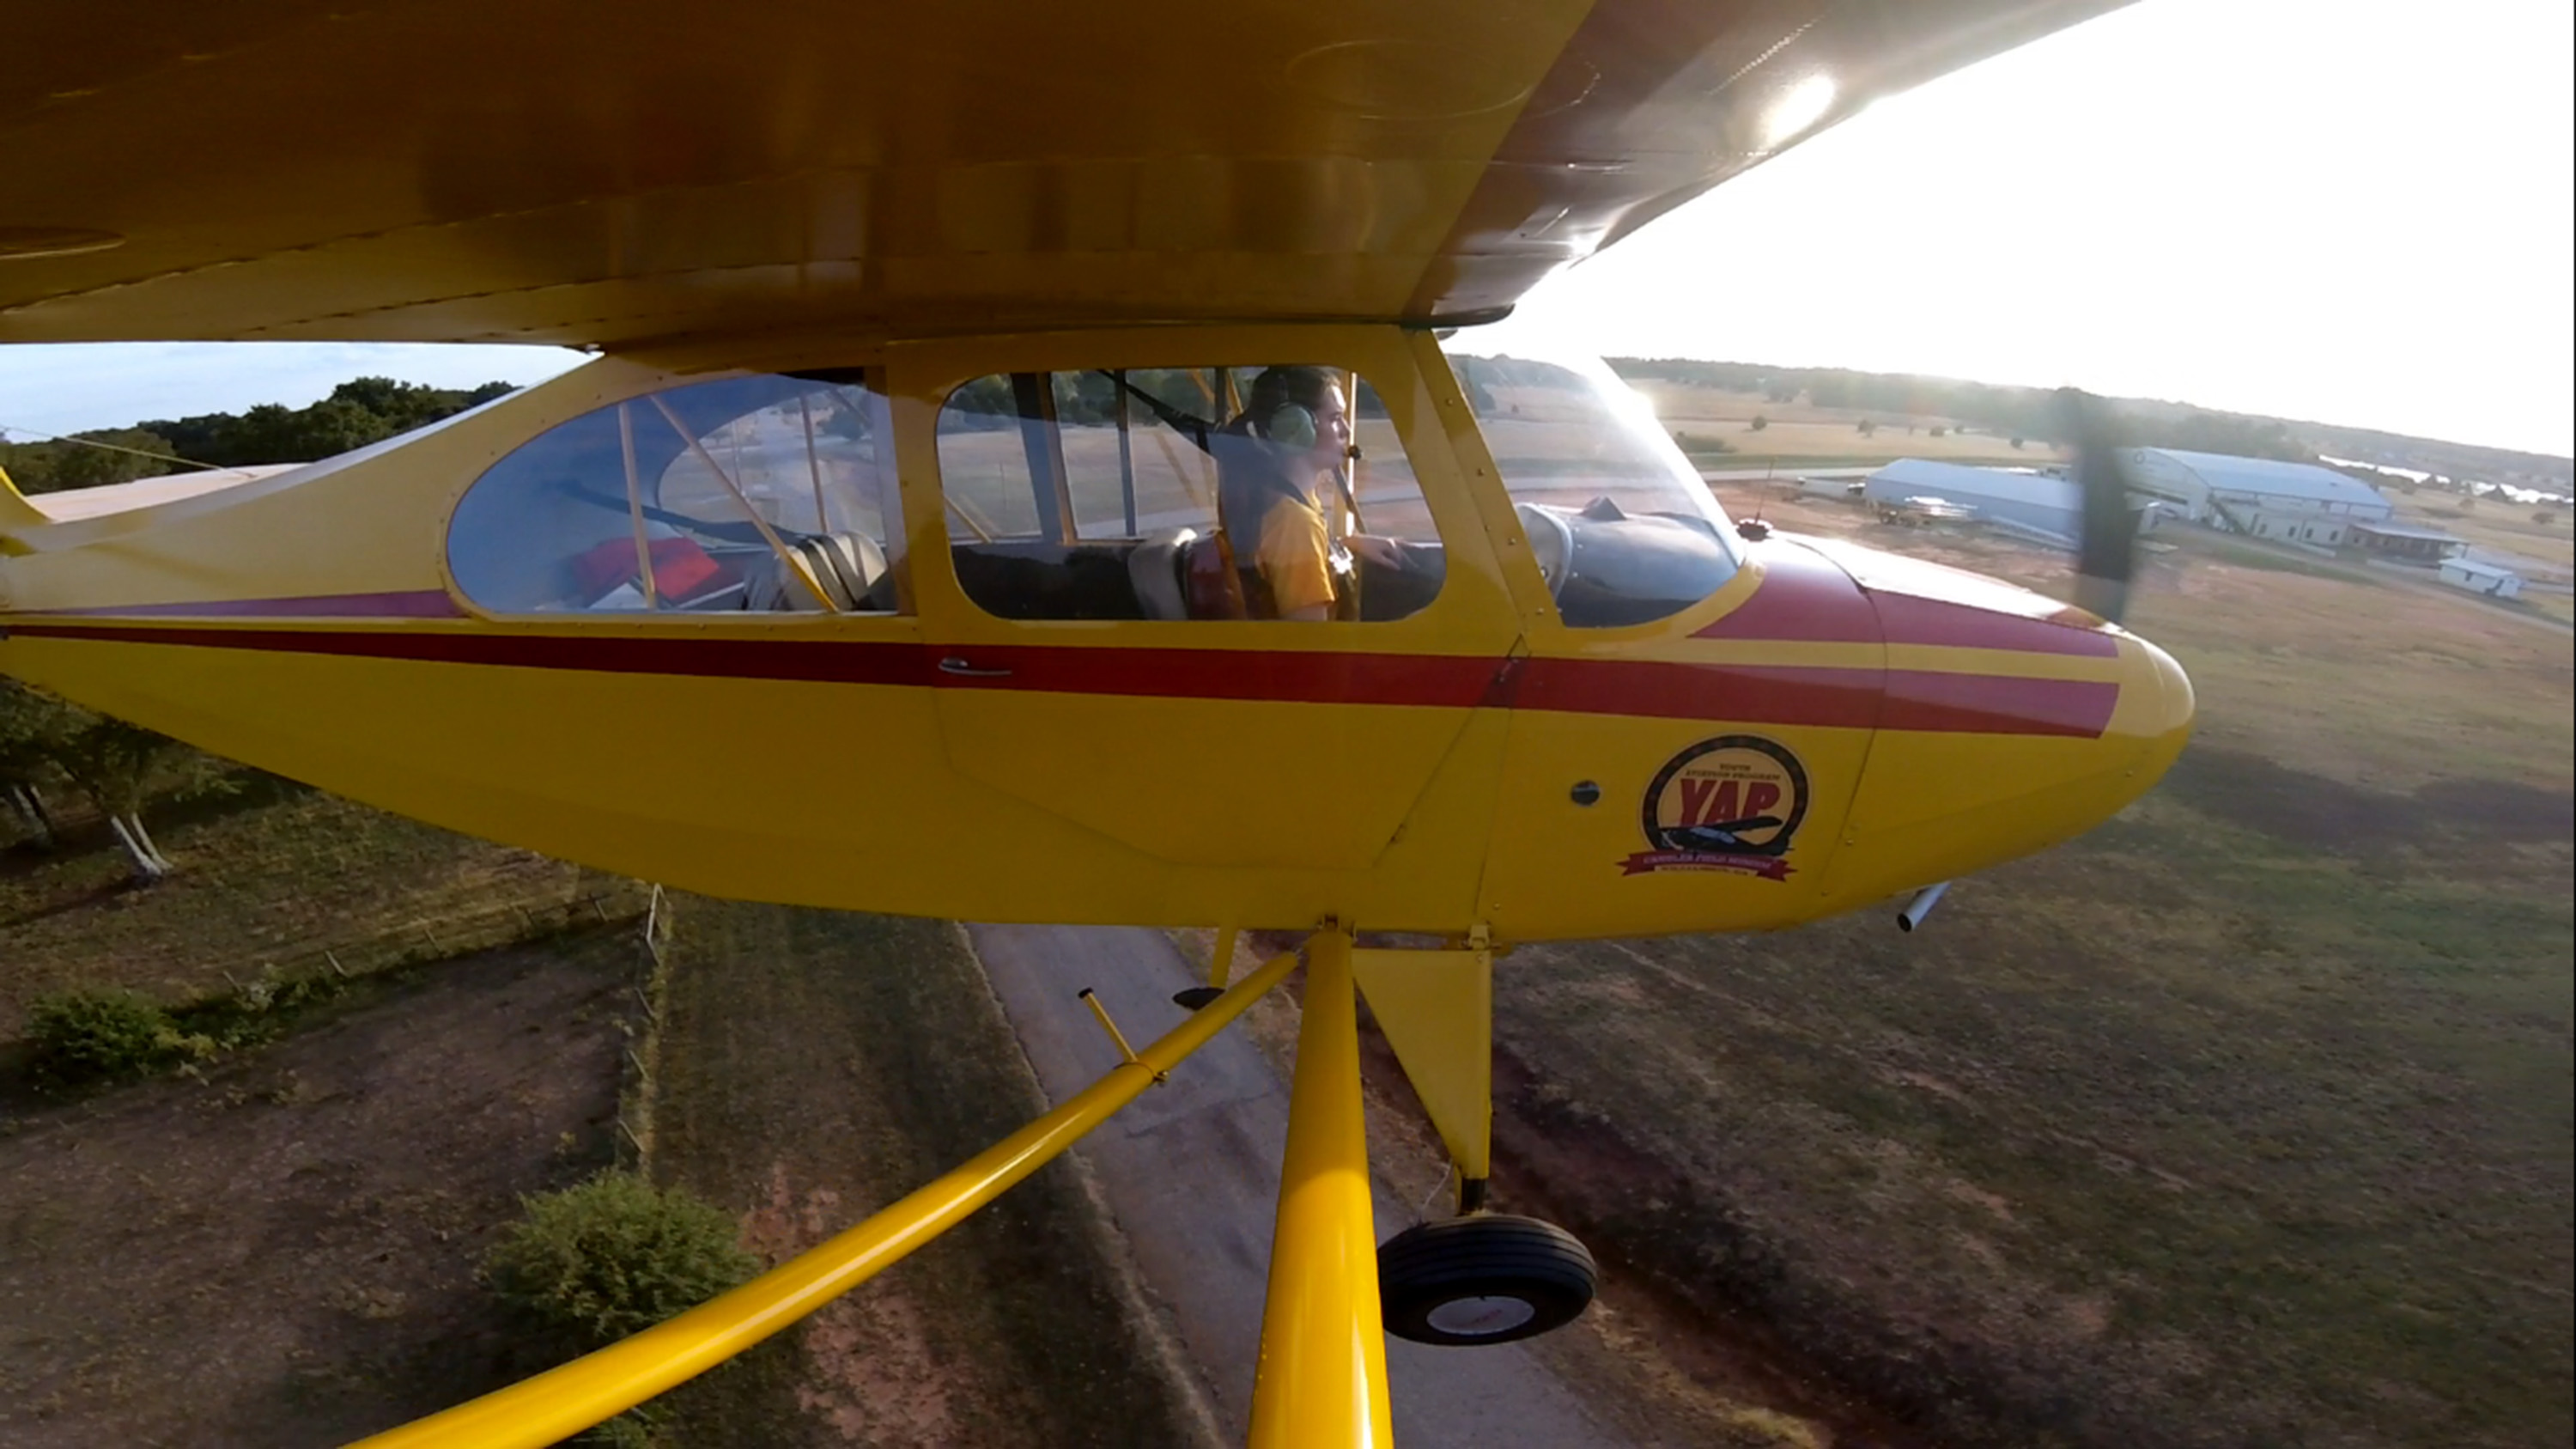 Student pilot Cayla McLeod solos in an Aeronca Champ at Peach State Aerodrome in Williamson, Georgia. Photo courtesy of Cayla McLeod.